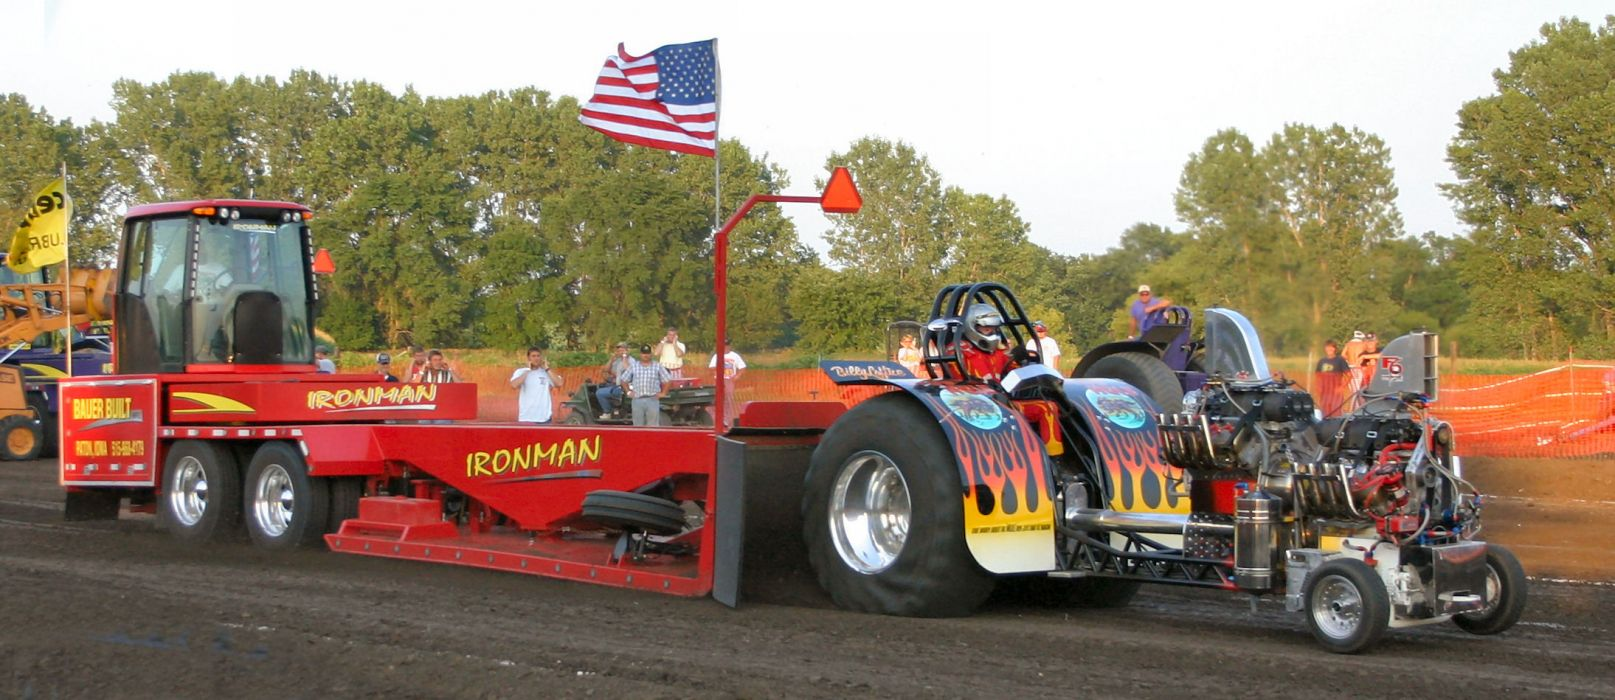 TRACTOR-PULLING race racing hot rod rods tractor engine    j wallpaper